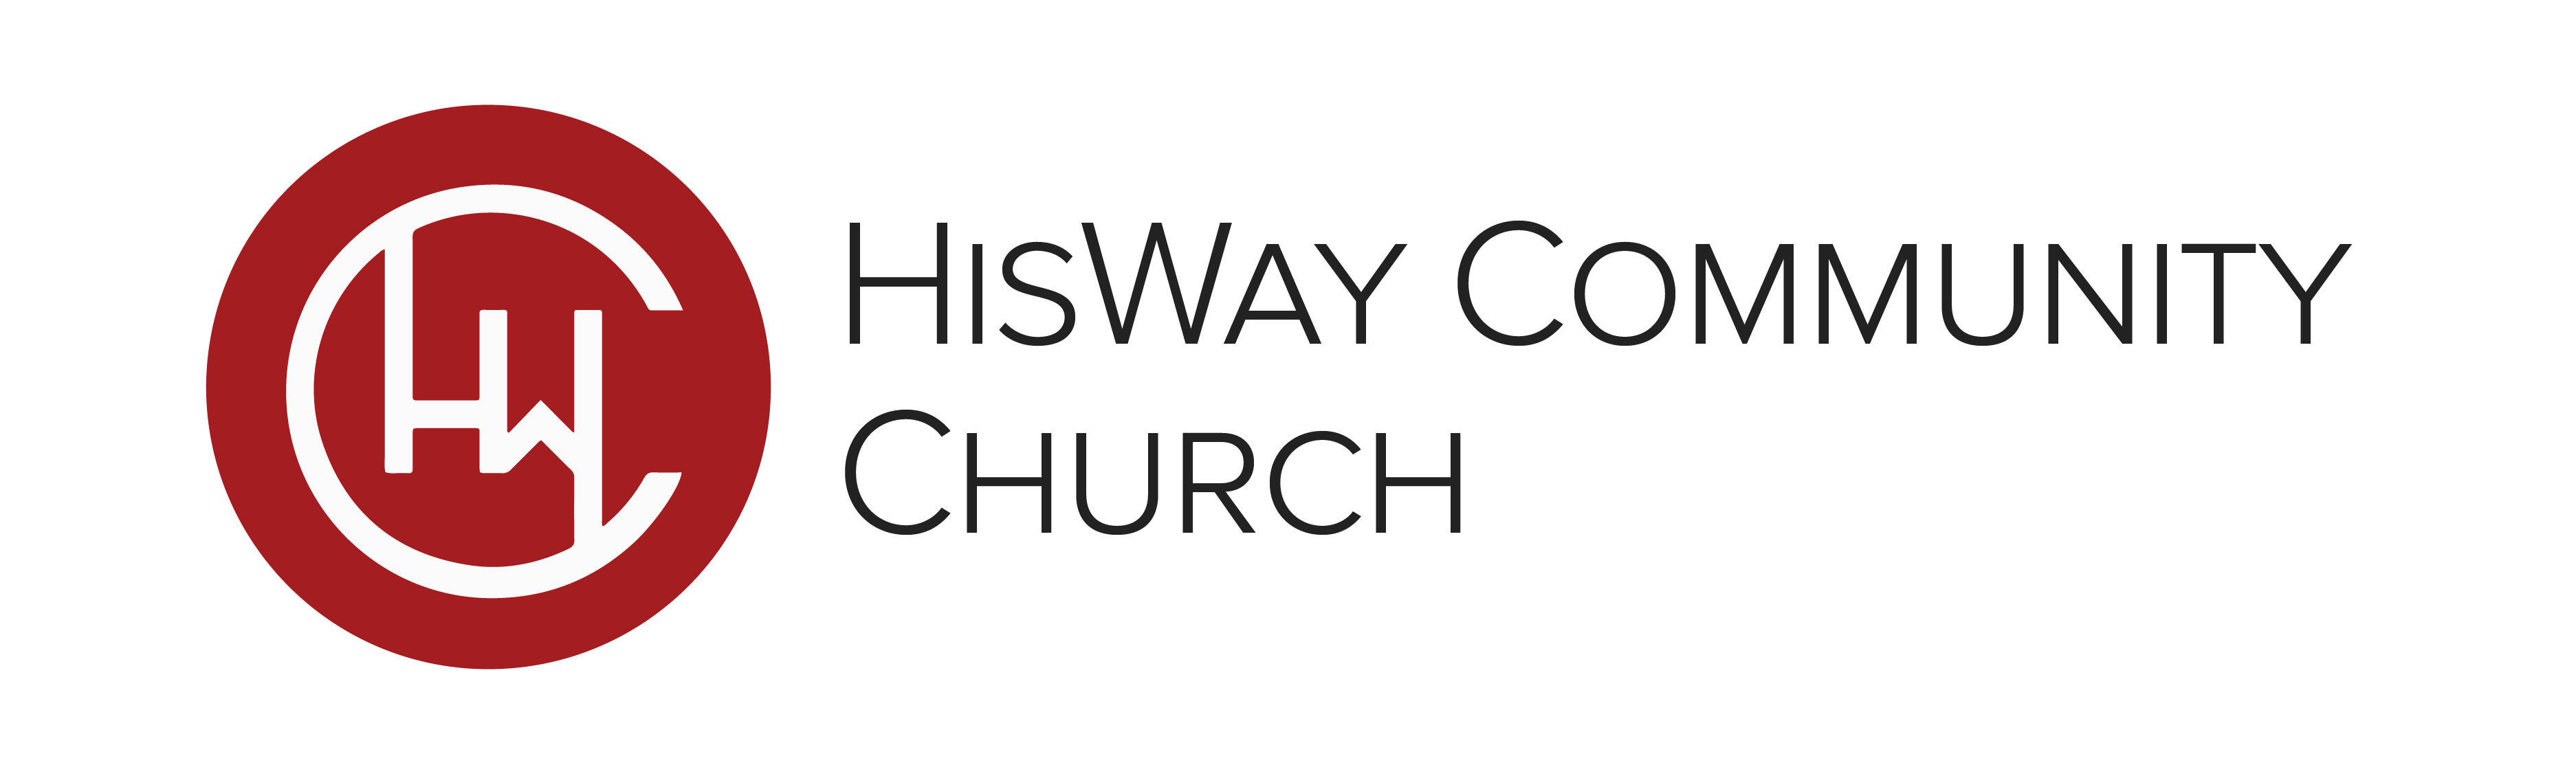 HisWay Community Church